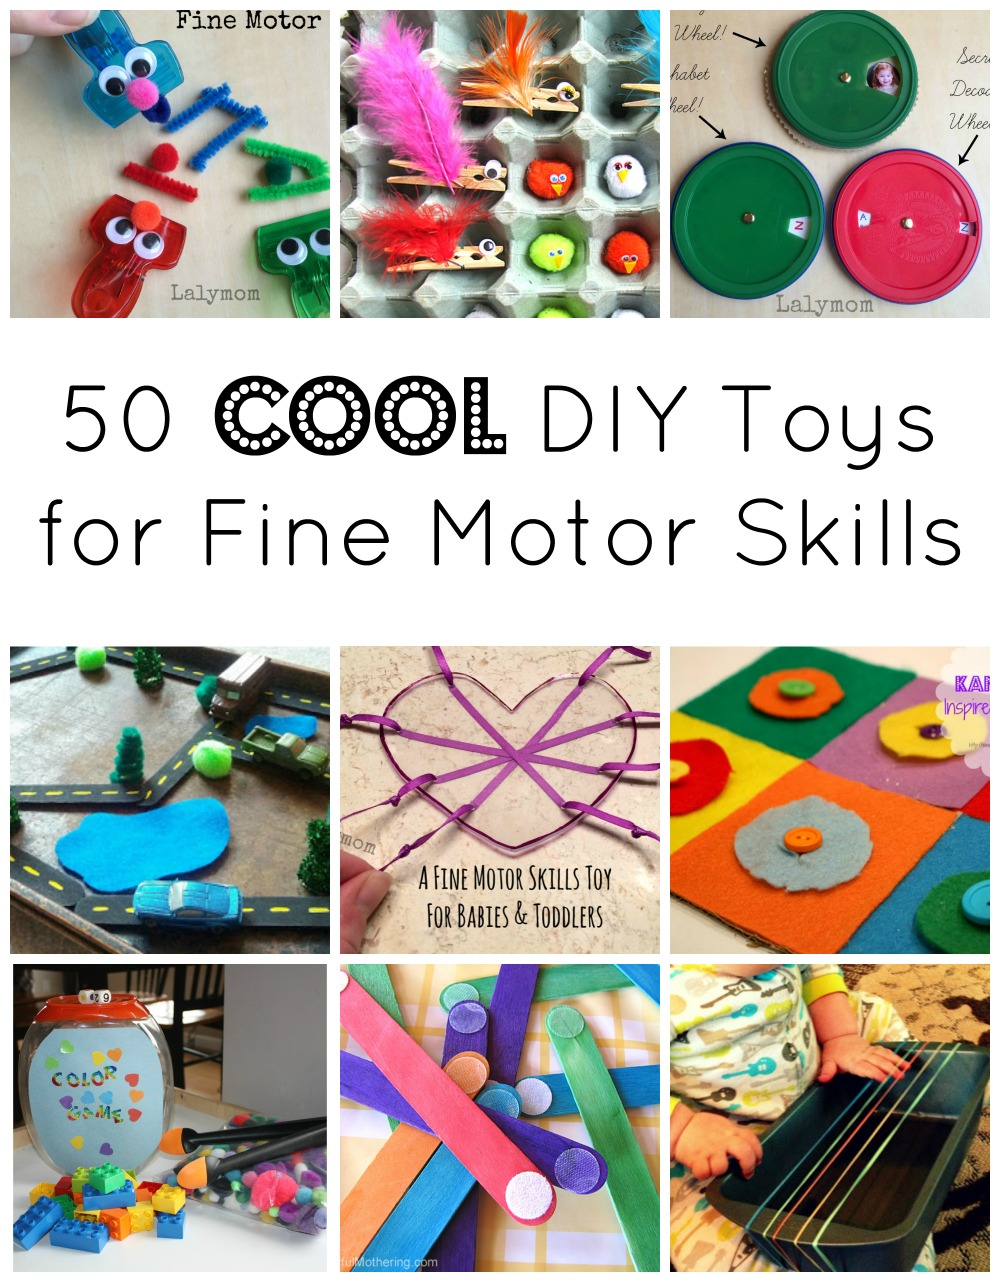 Fine-Motor-Skills-with-DIY-Toys-from-Lalymom